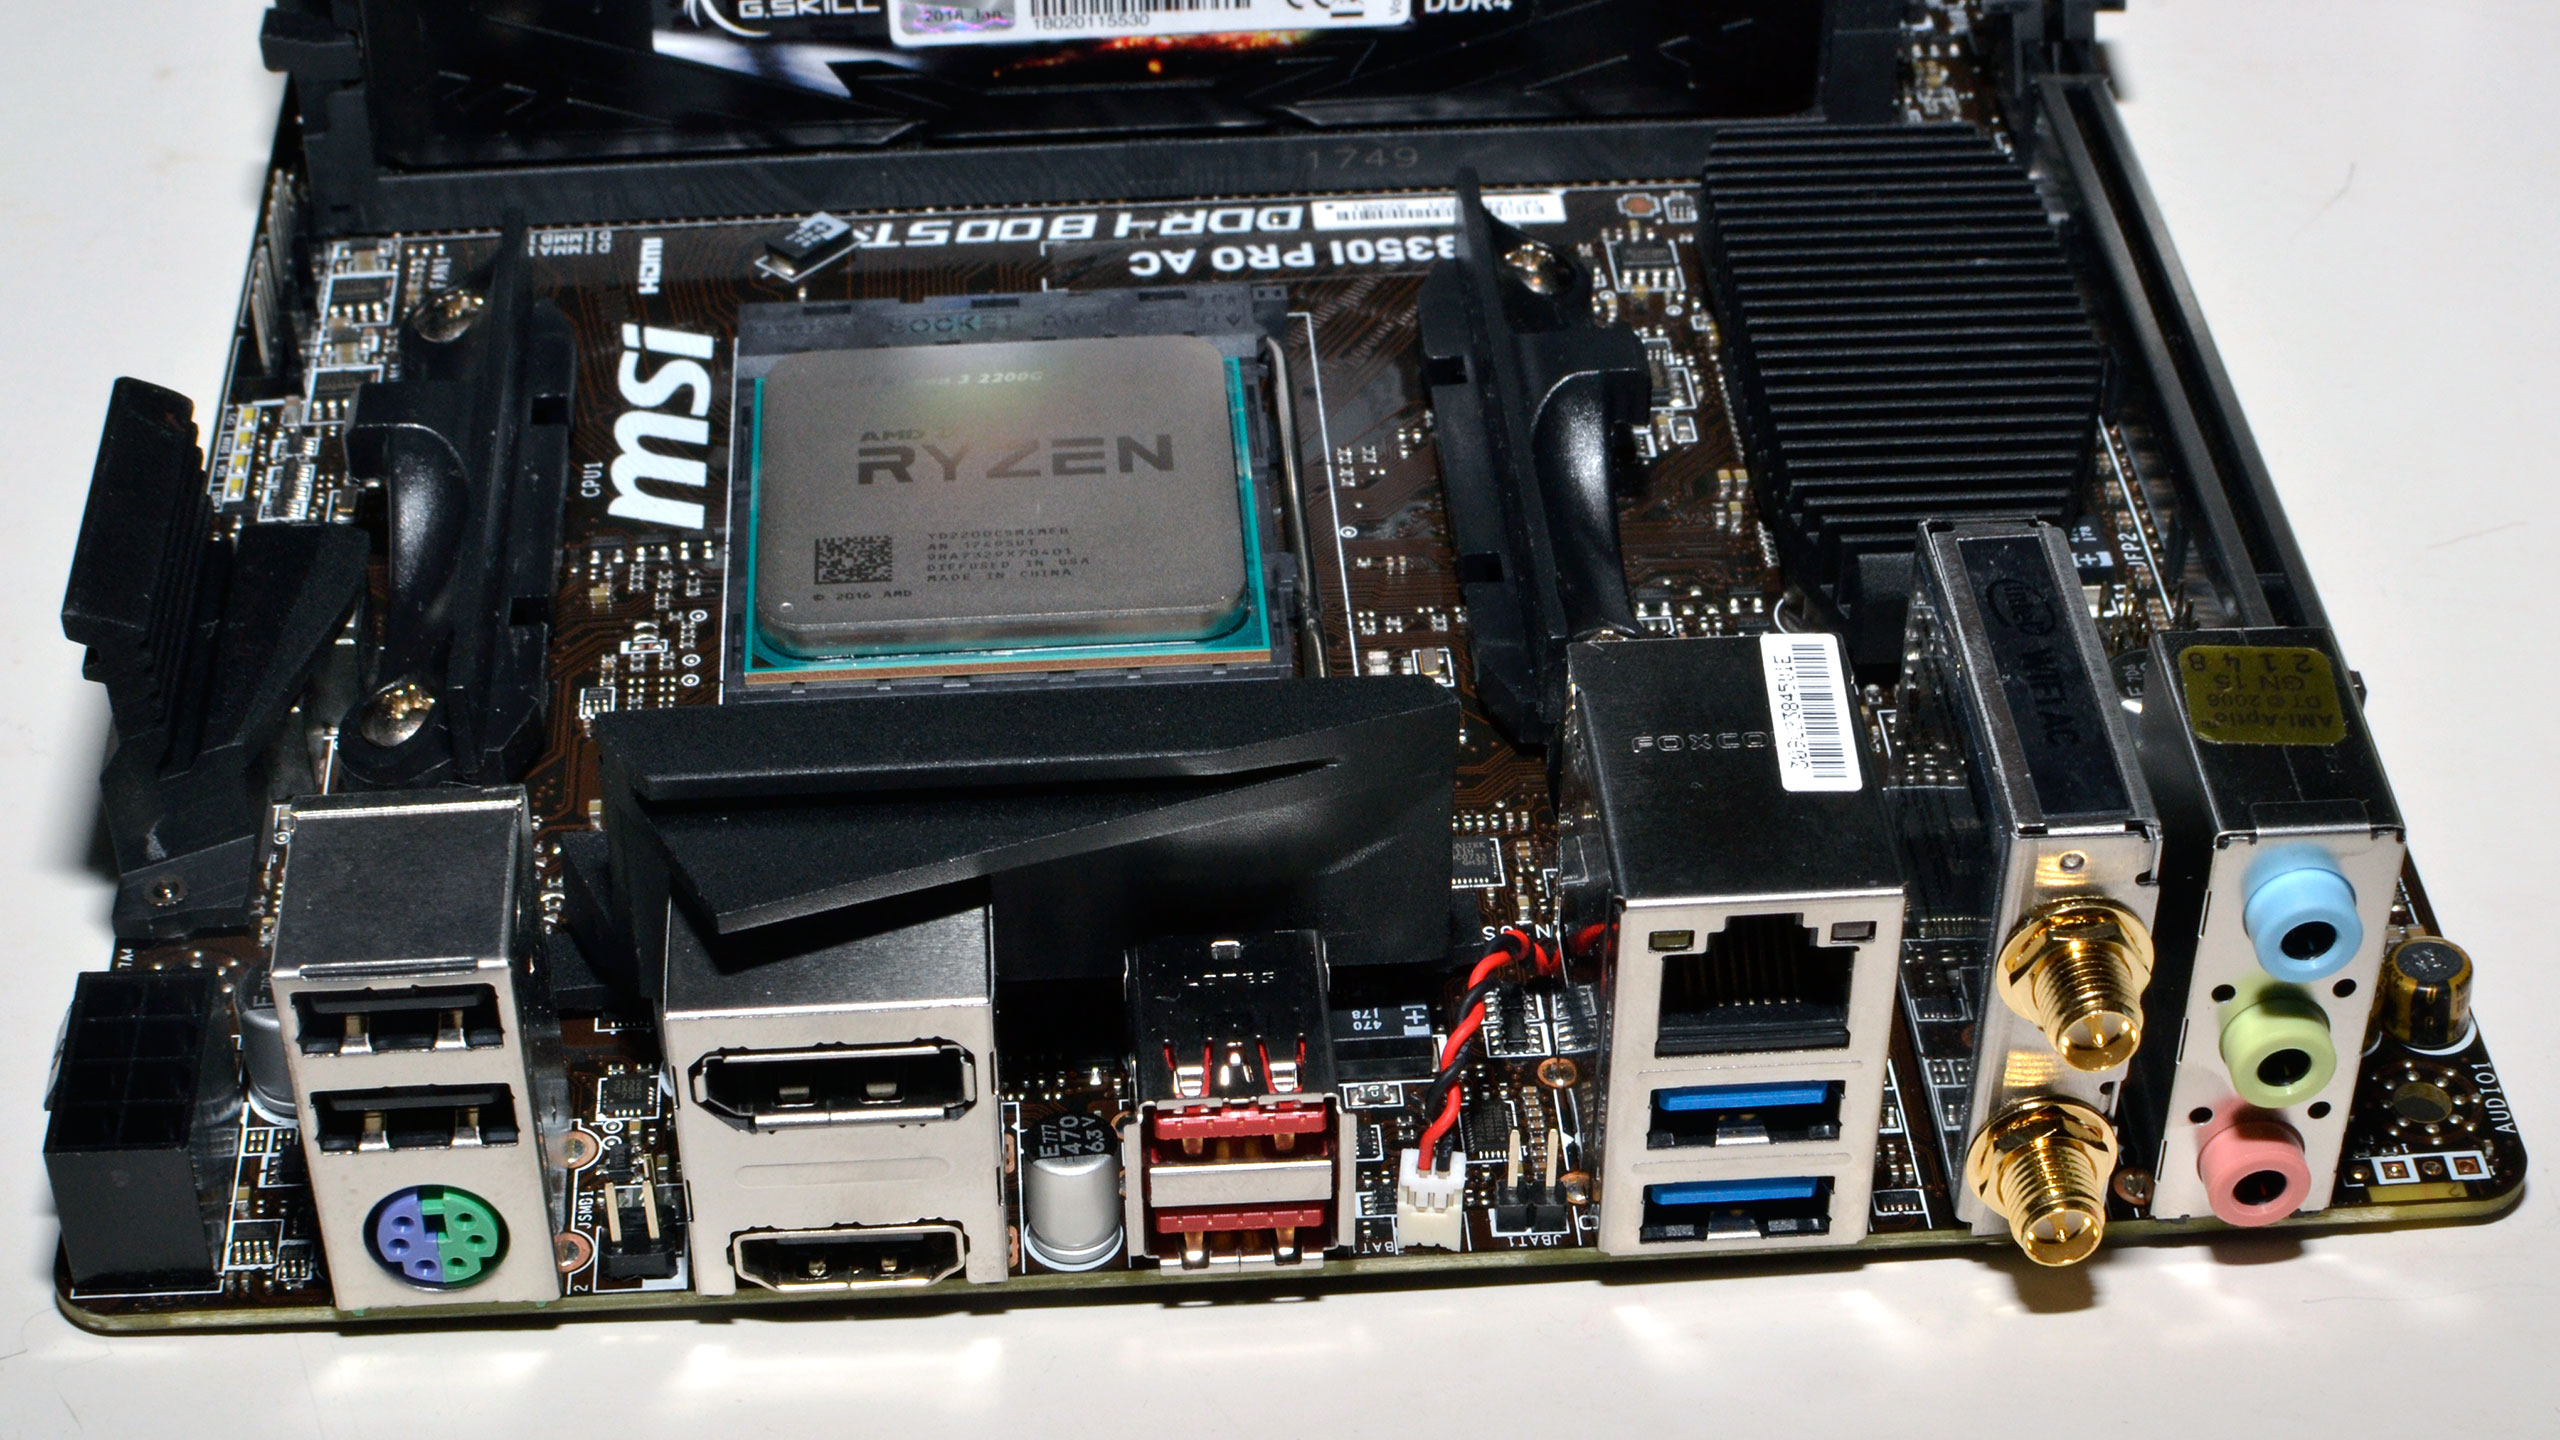 Ryzen 3 2200G is great for extreme budget gaming and HTPC